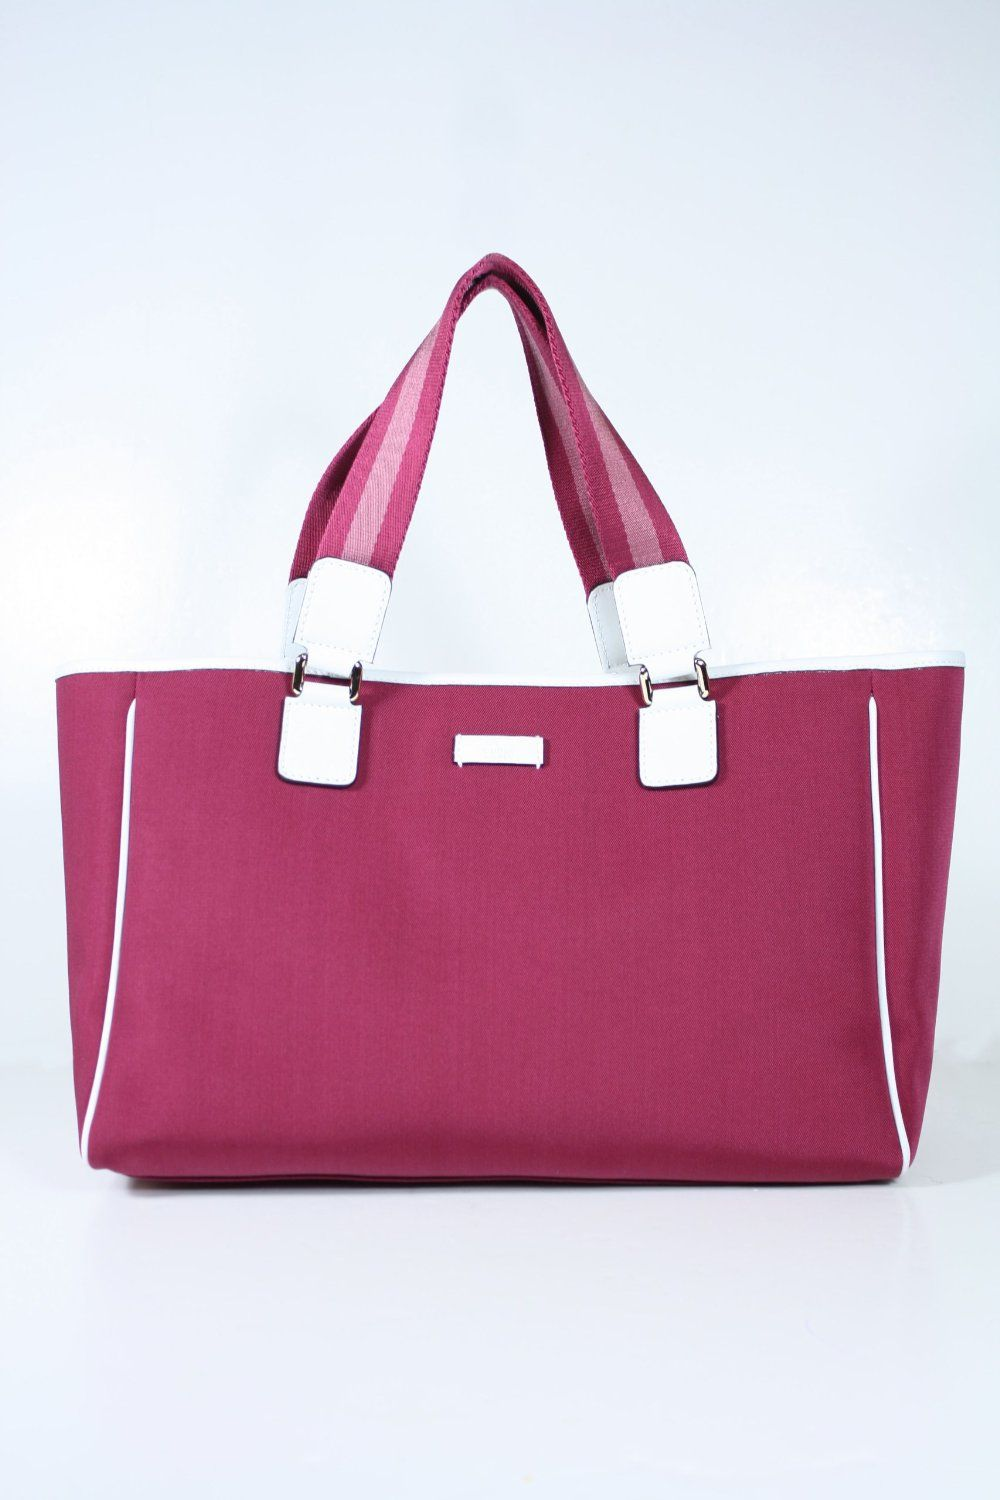 Gucci Handbags Red Pink Fabric And White Leather 264216 Clearance Regular Price 670 00